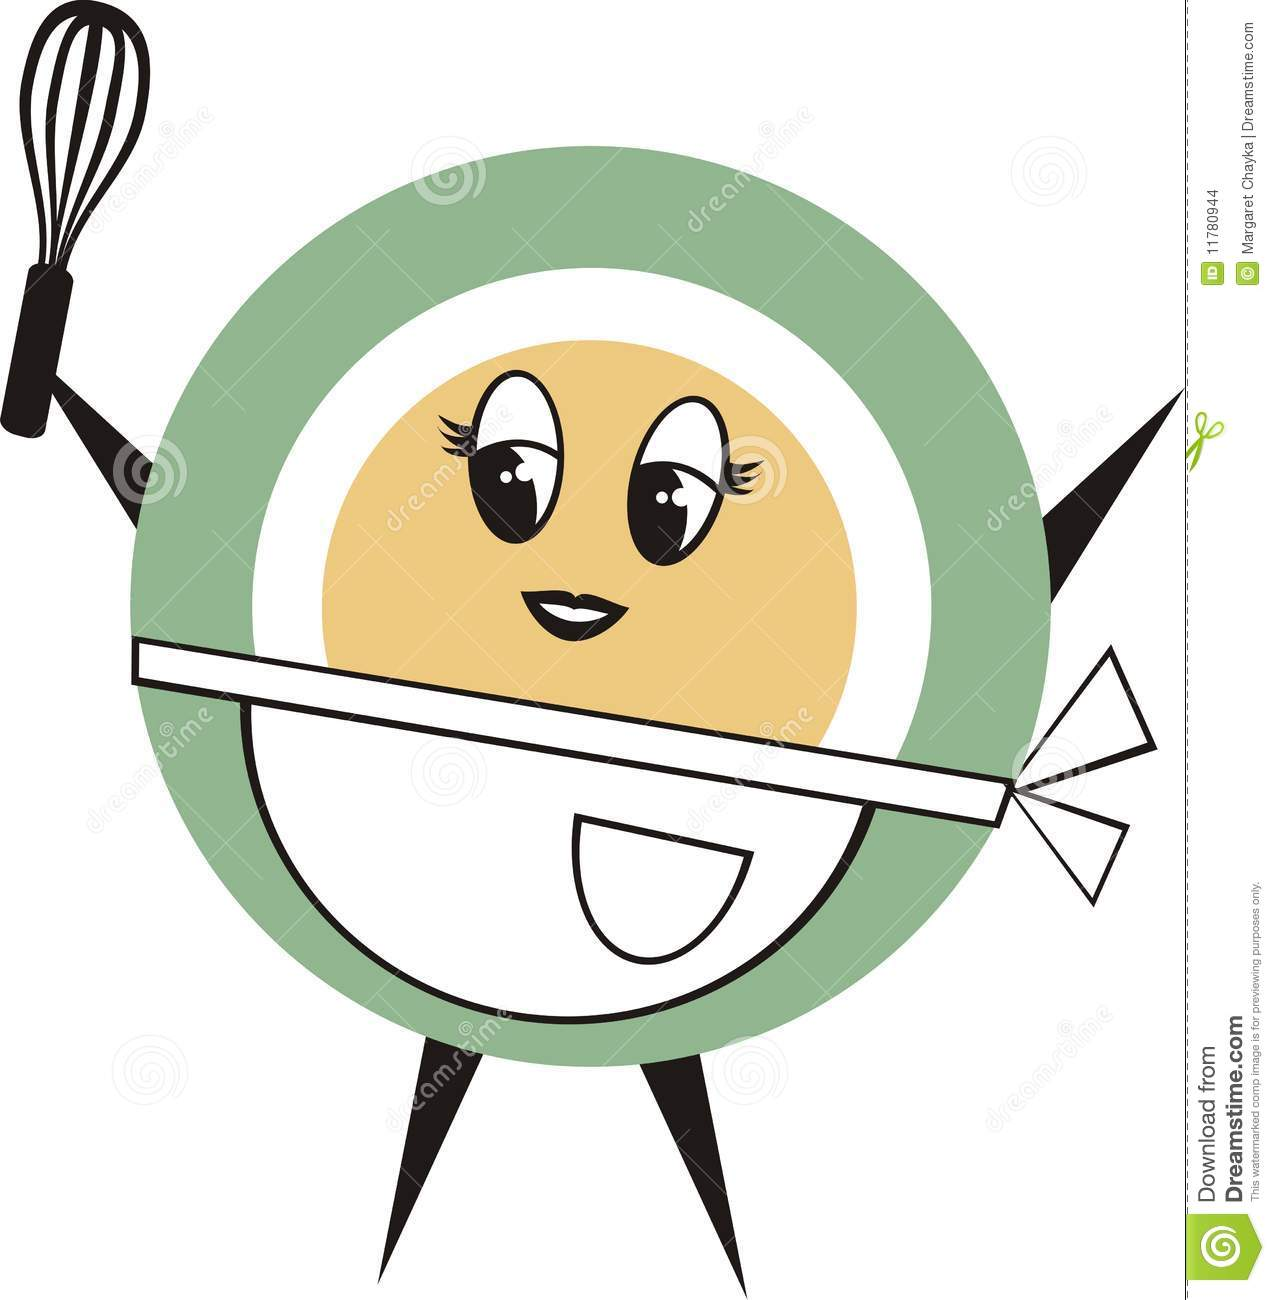 cooking%20utensils%20clipart